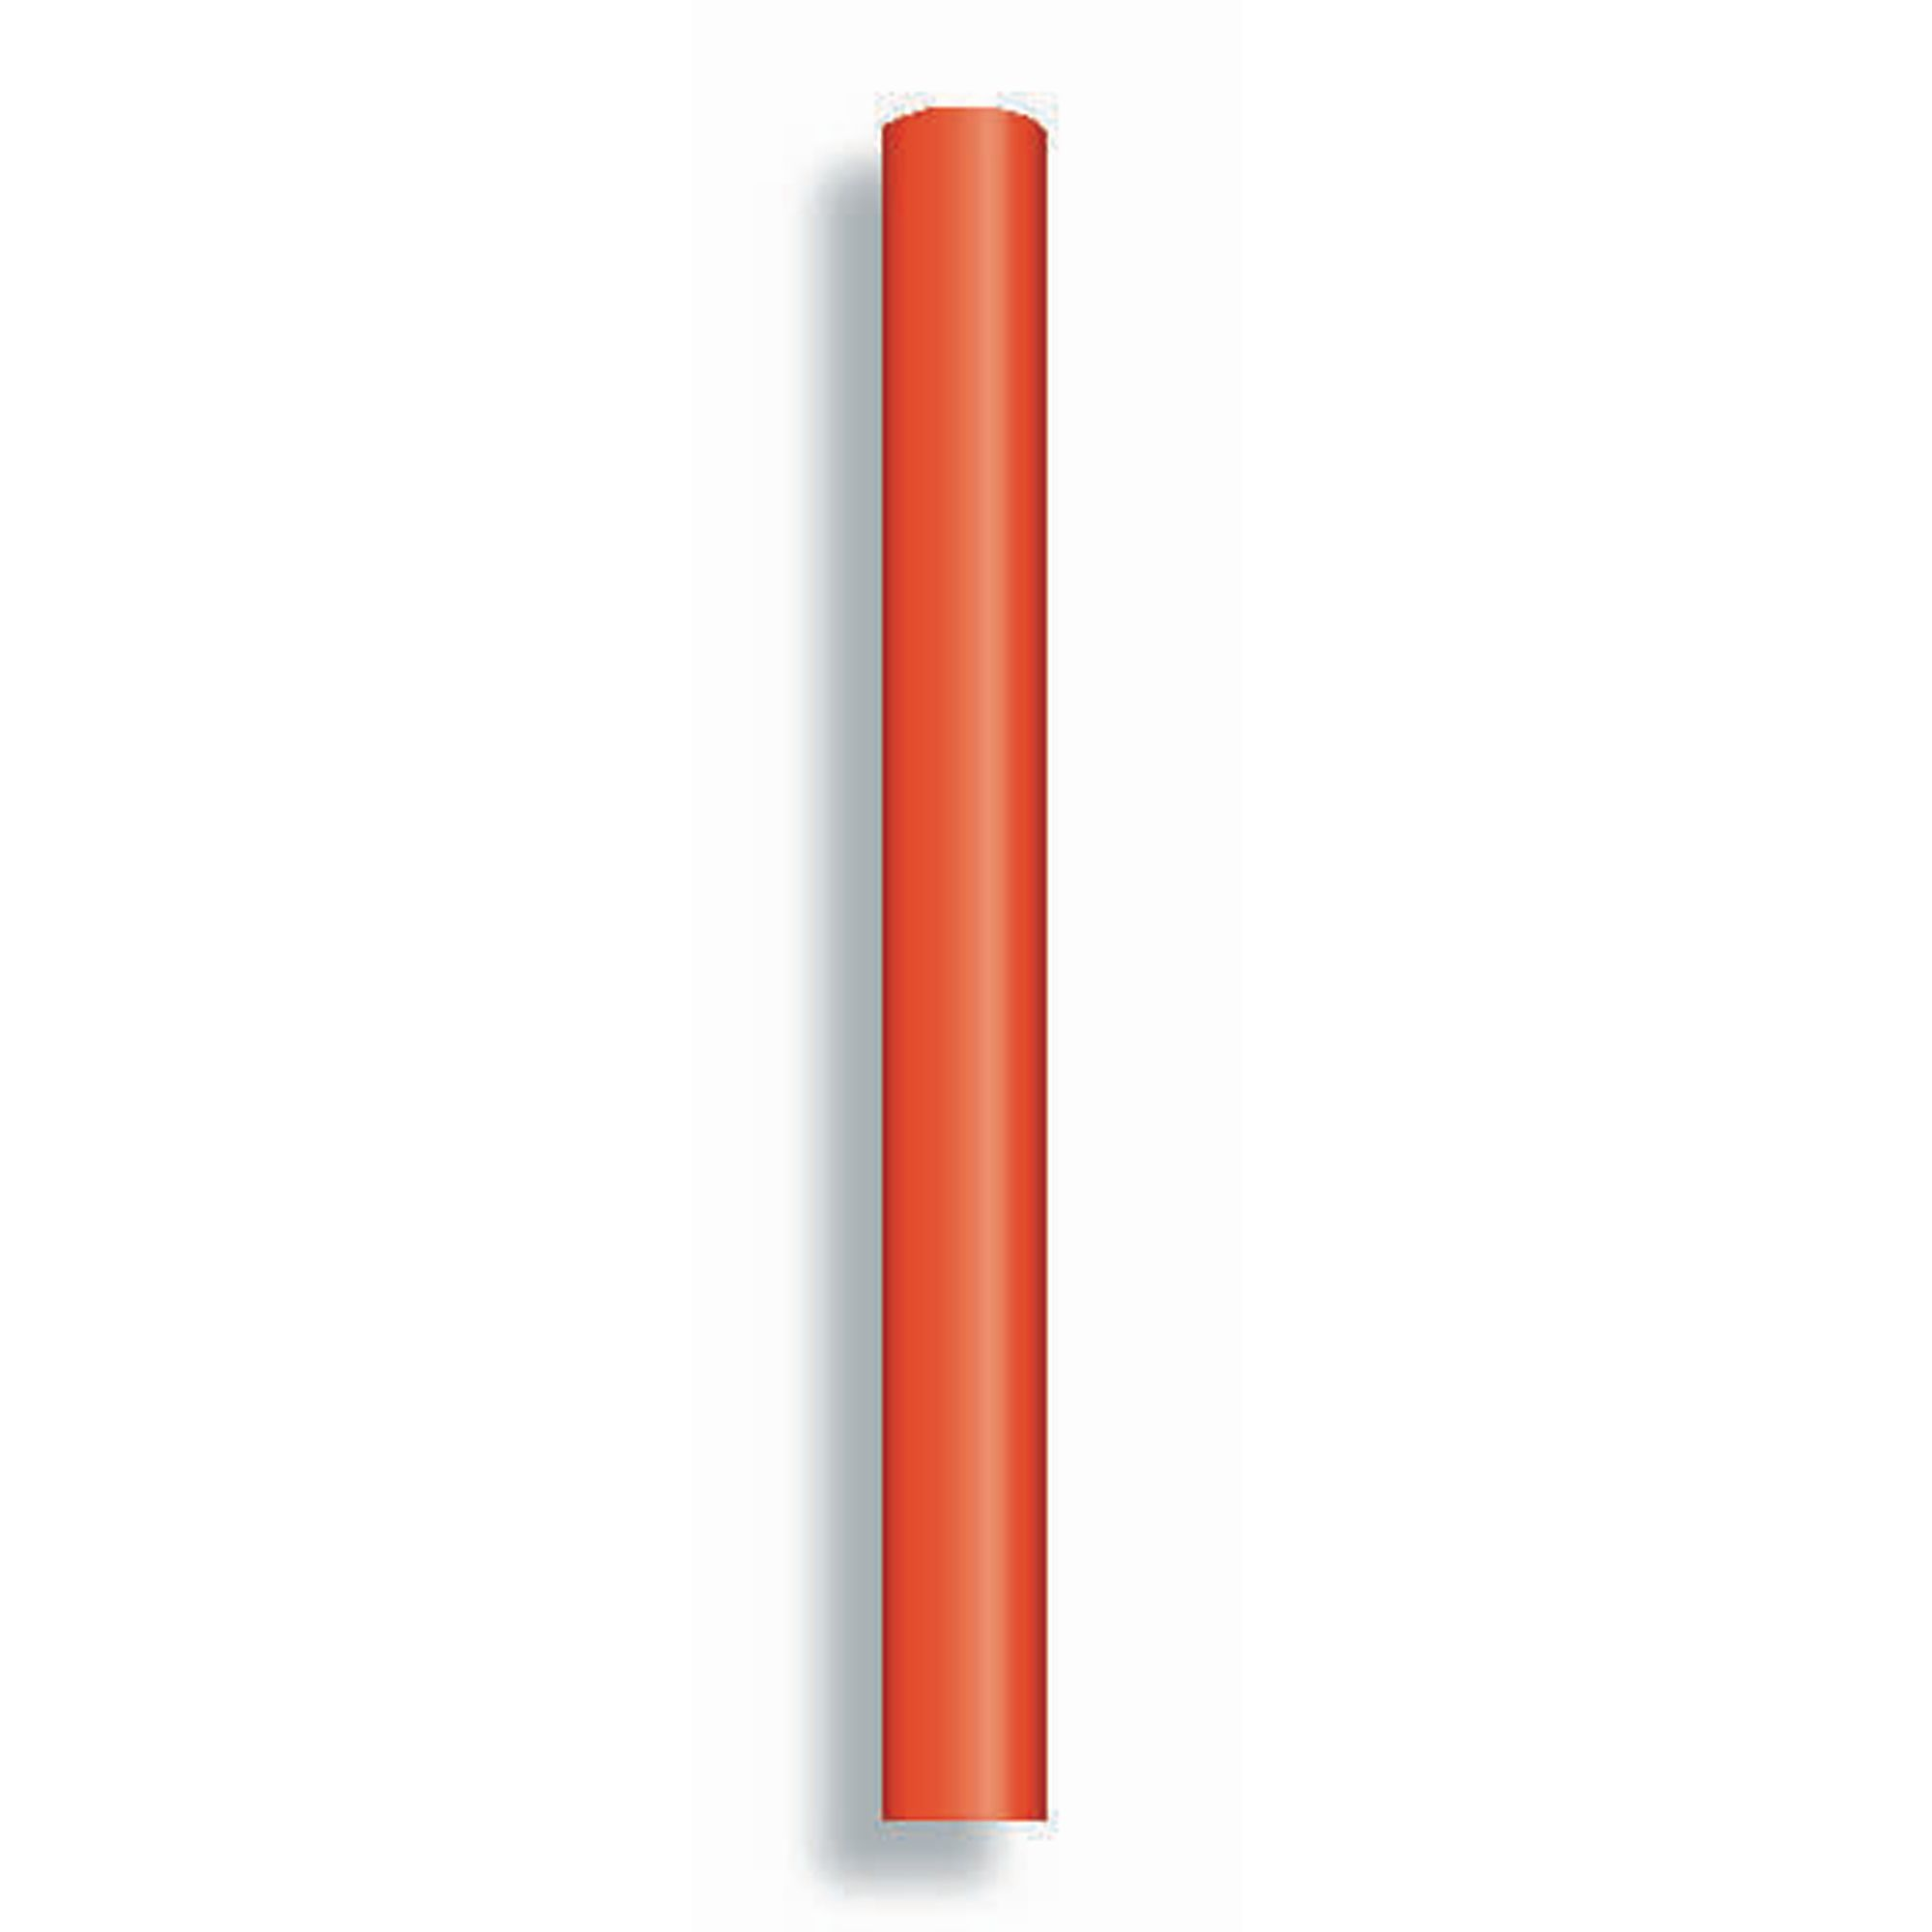 FADELESS EXTRA WIDE DISPLAY ROLL FOR CLASSROOM DISPLAY 1218mm x 15m